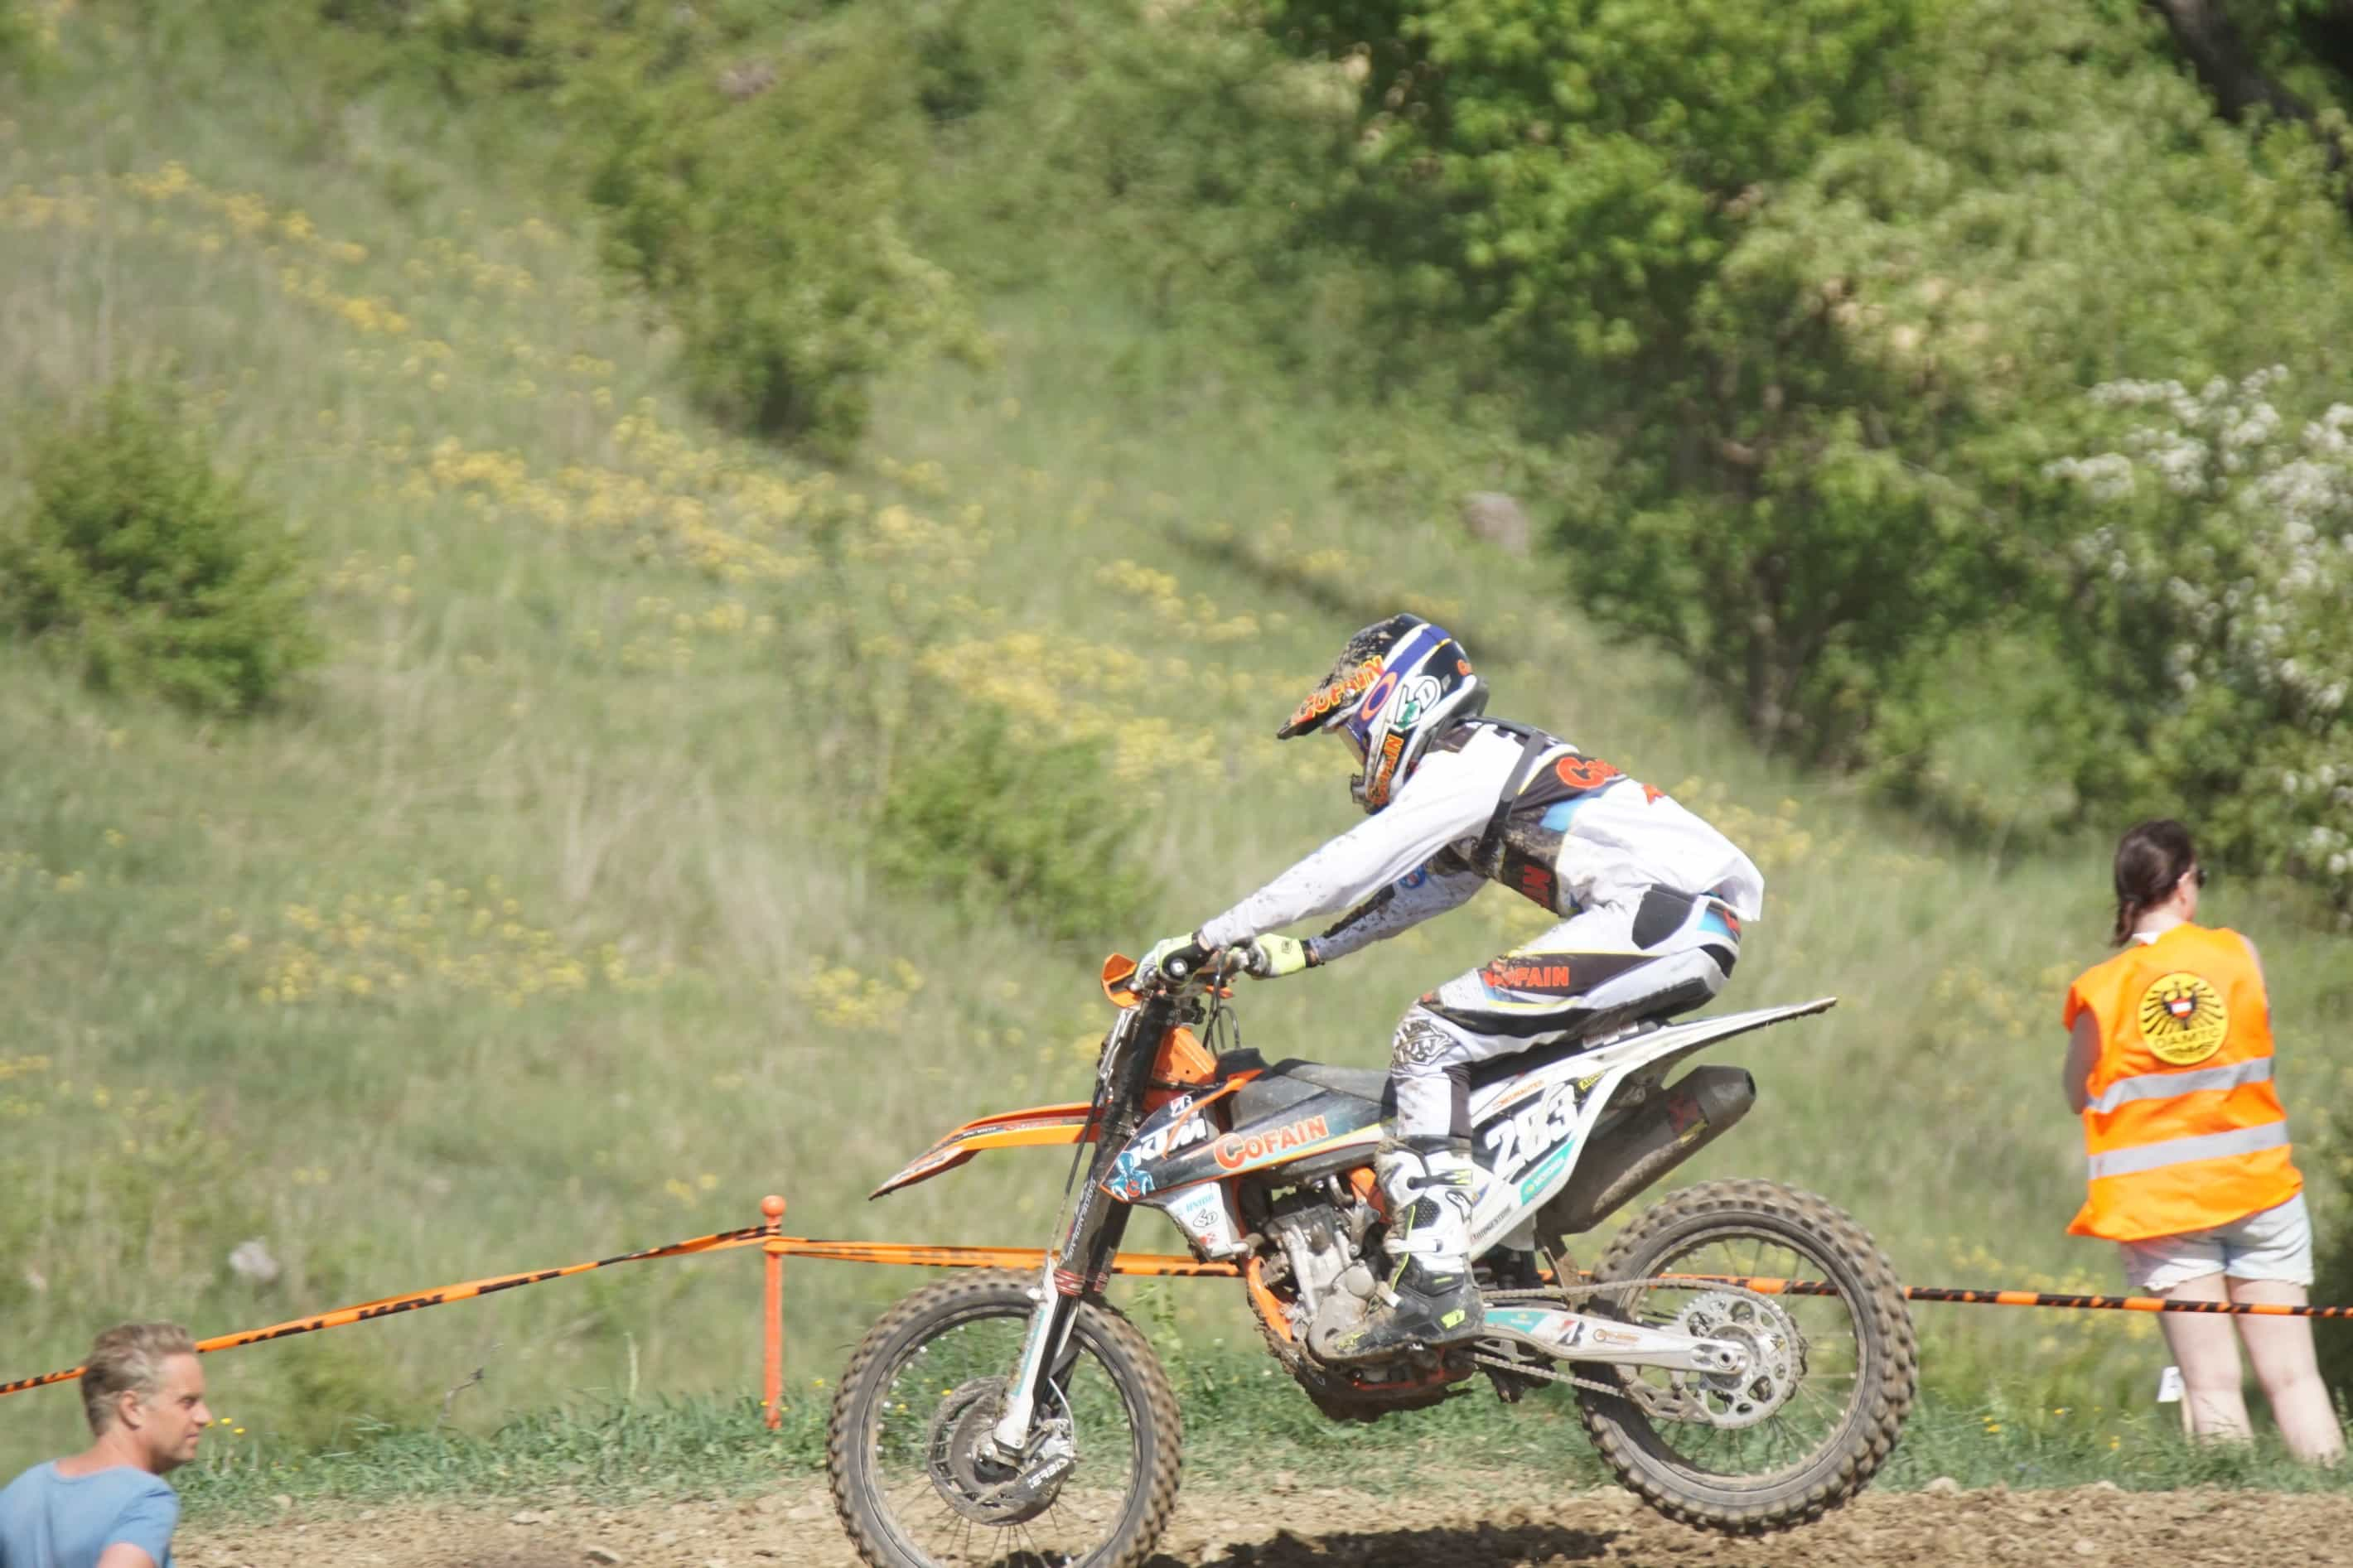 DSC 725_Moto Cross Sittendorf Teil1 am 29.04.2018